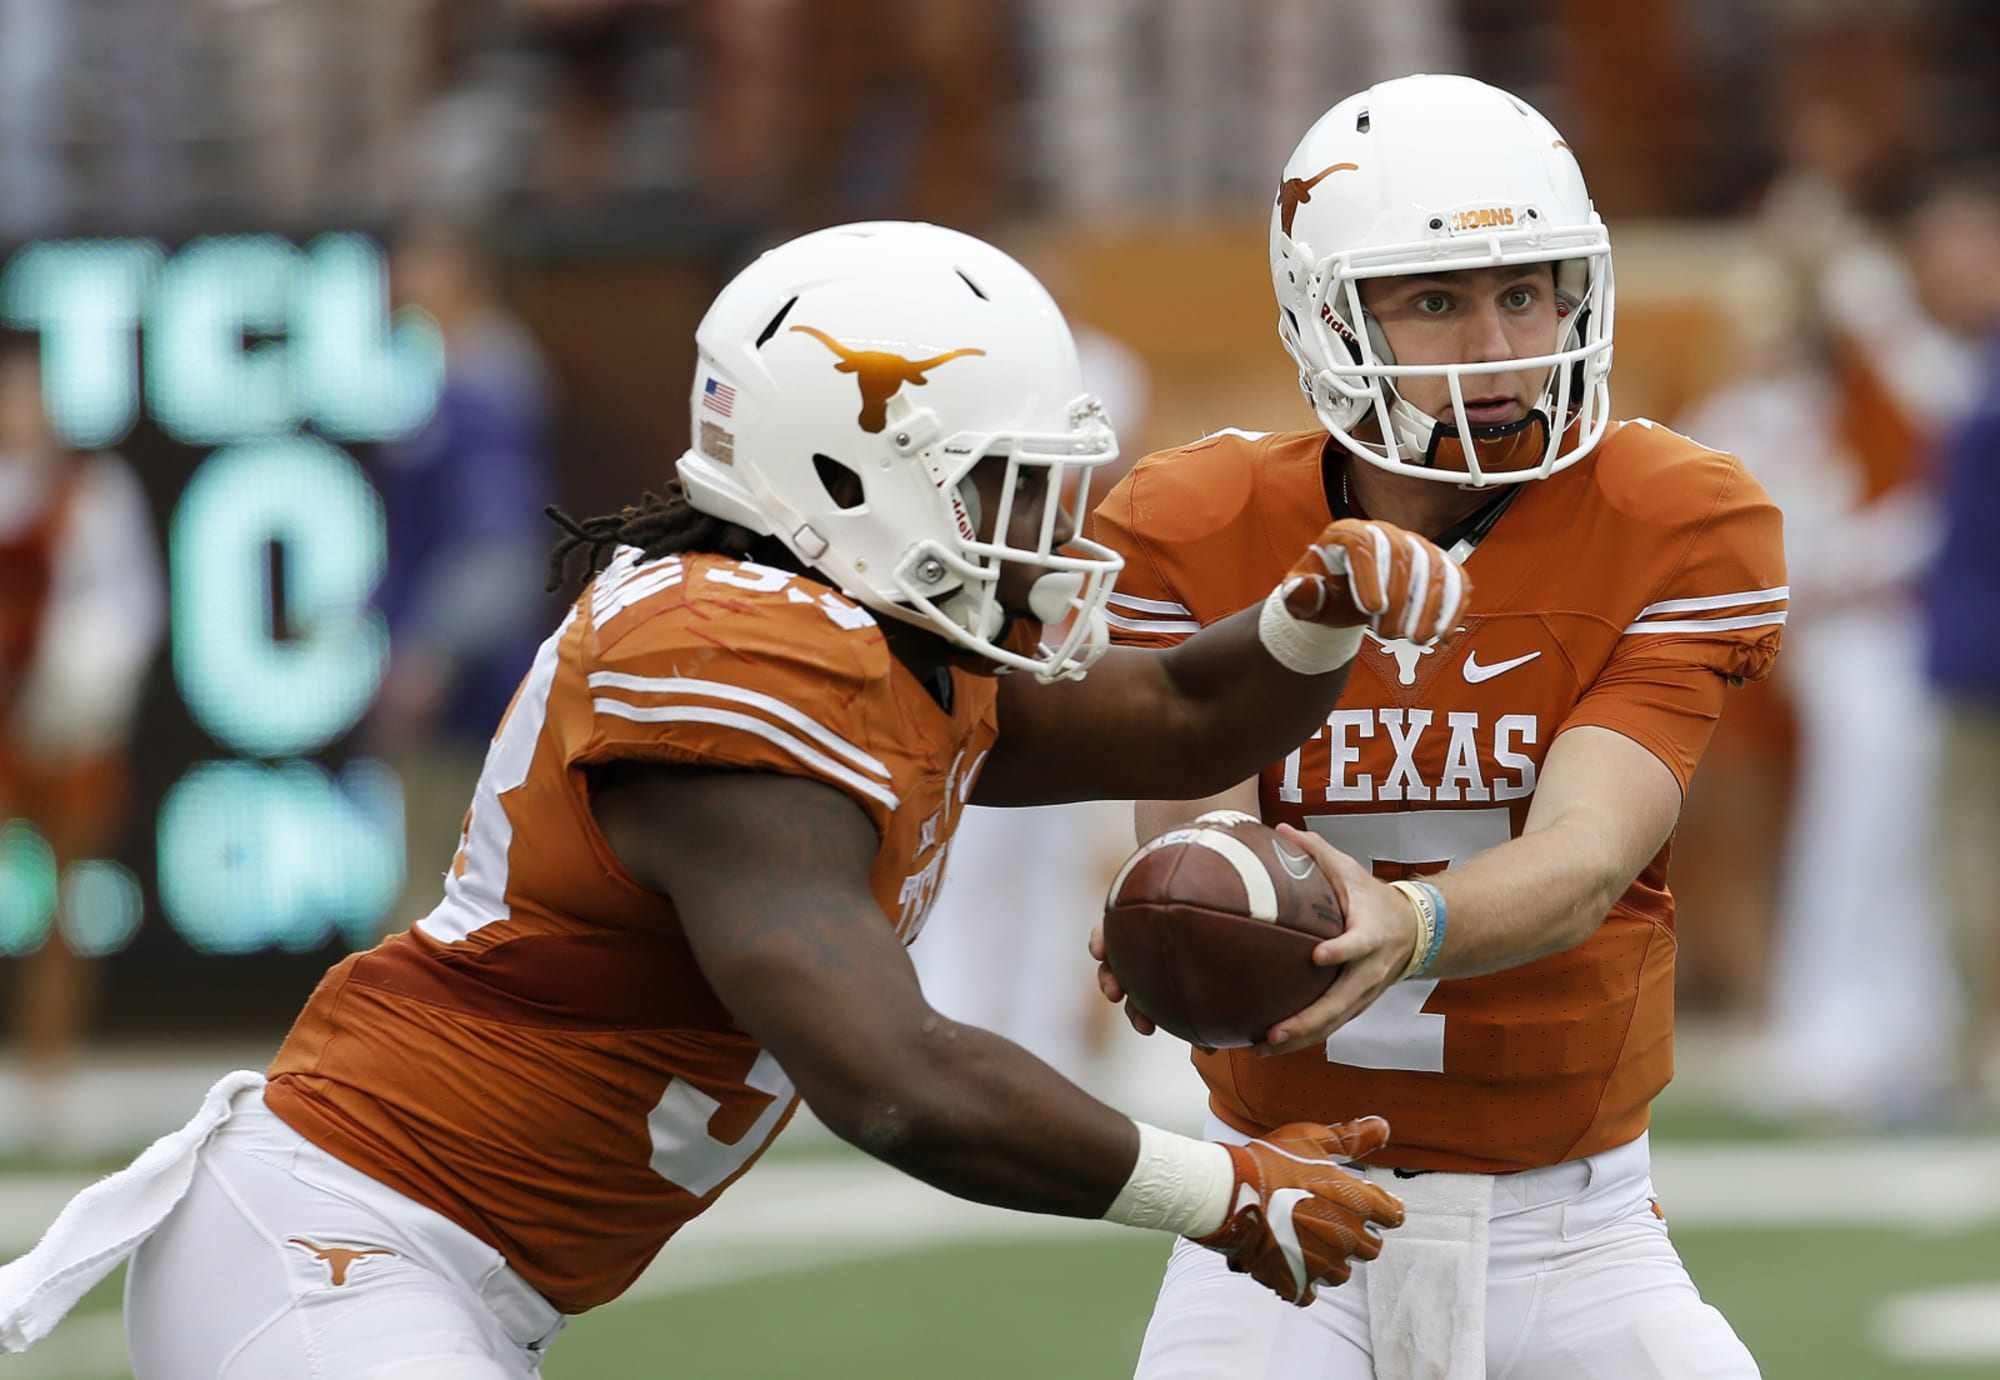 Texas Football: 3 most under-appreciated running backs ever